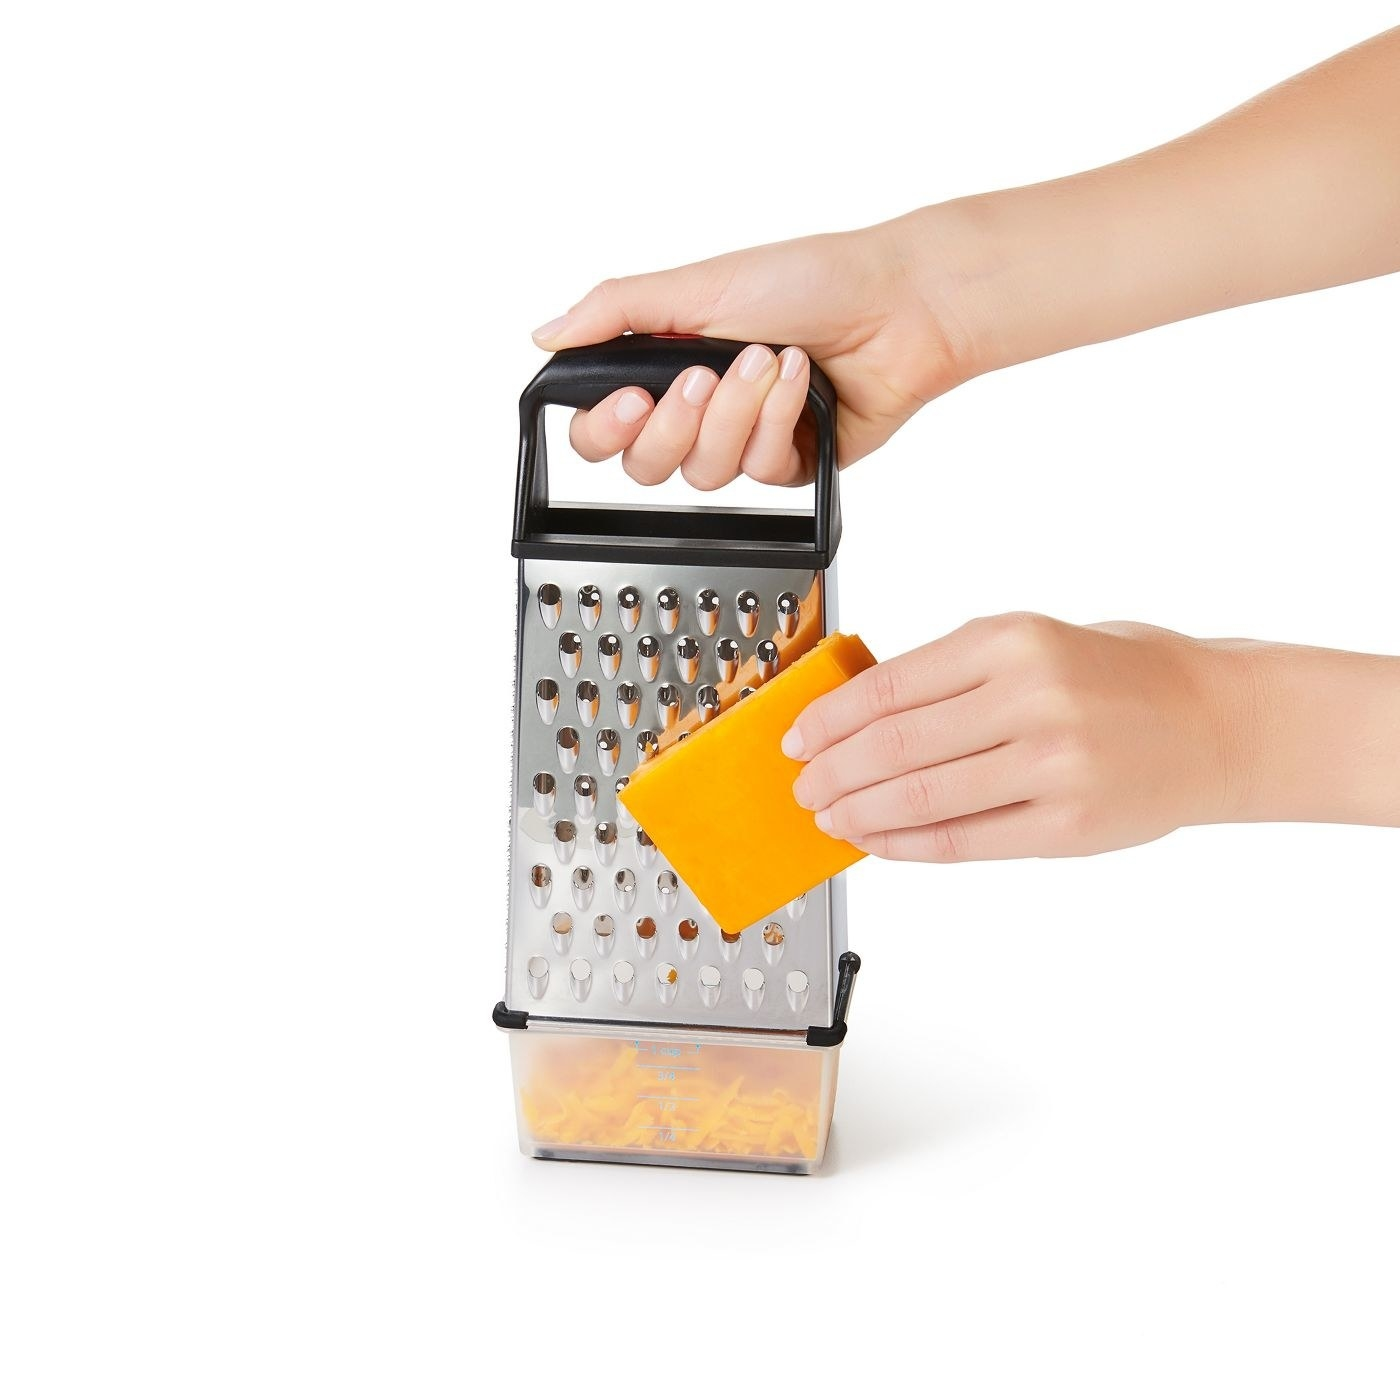 A model using a grater with a cup underneath